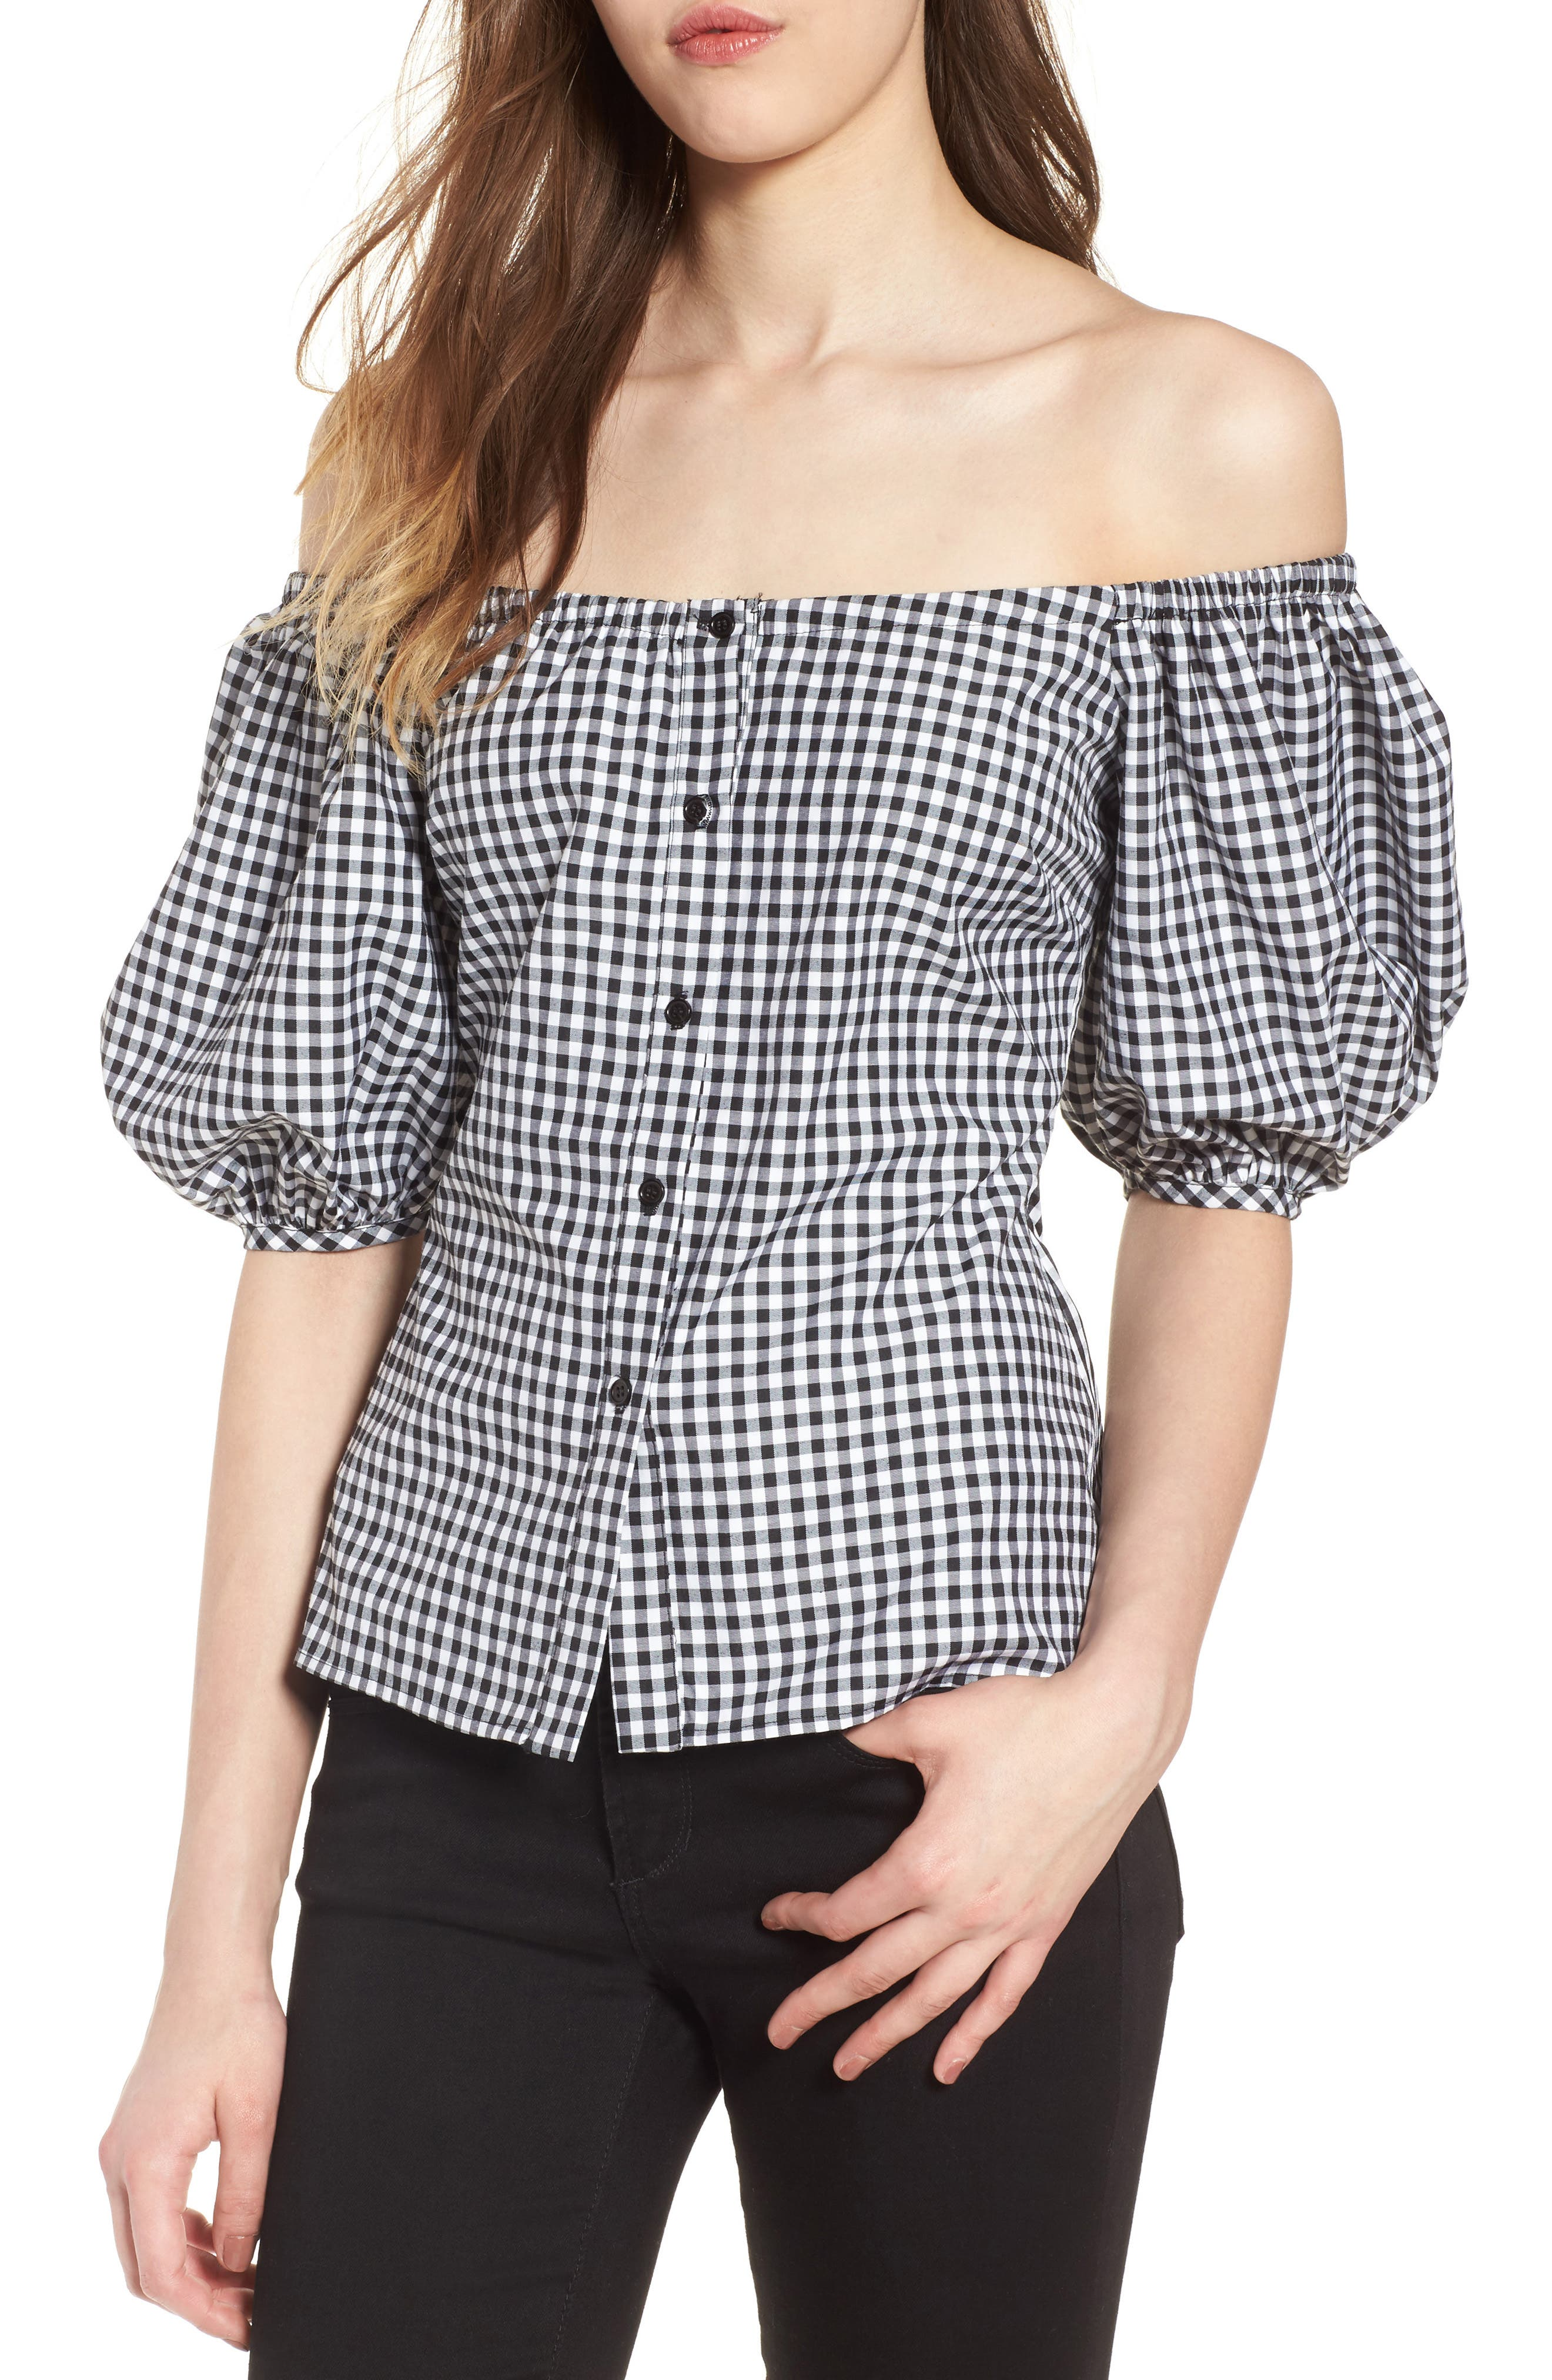 Buffalo Check Off the Shoulder Blouse,                         Main,                         color, Black White Gingham